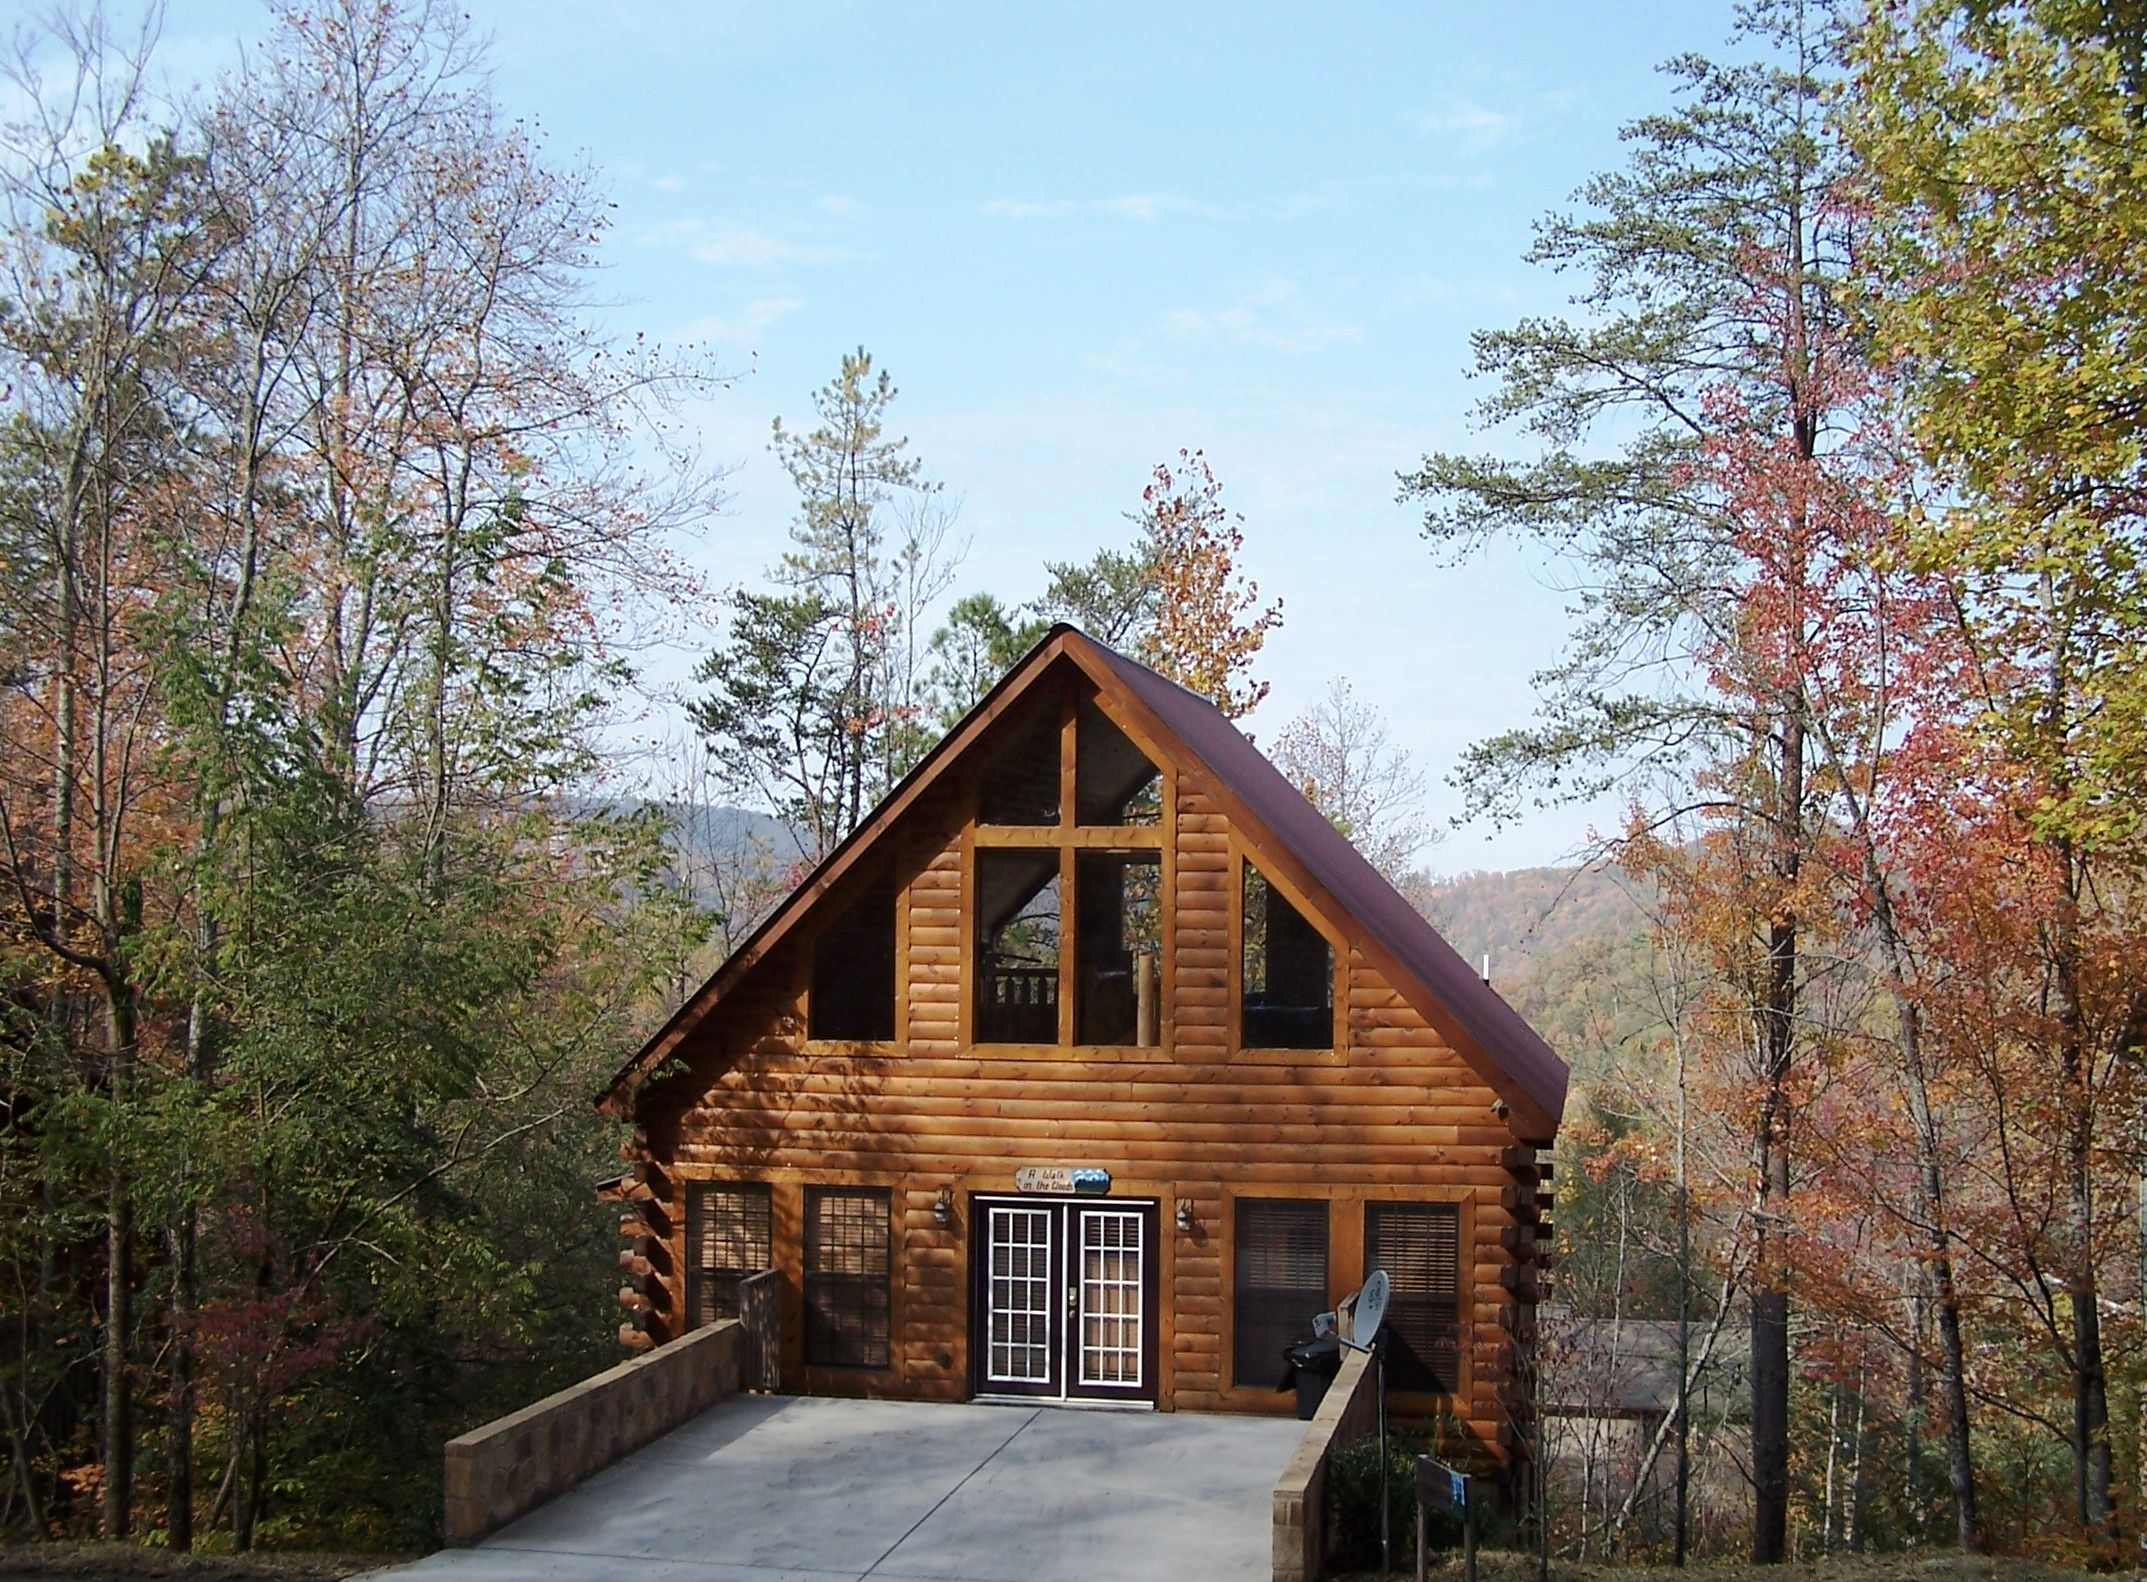 fl with pool pigeon friendly indoor gainesville private ga tn rentals forge gatlinburg in pet cabins cabin